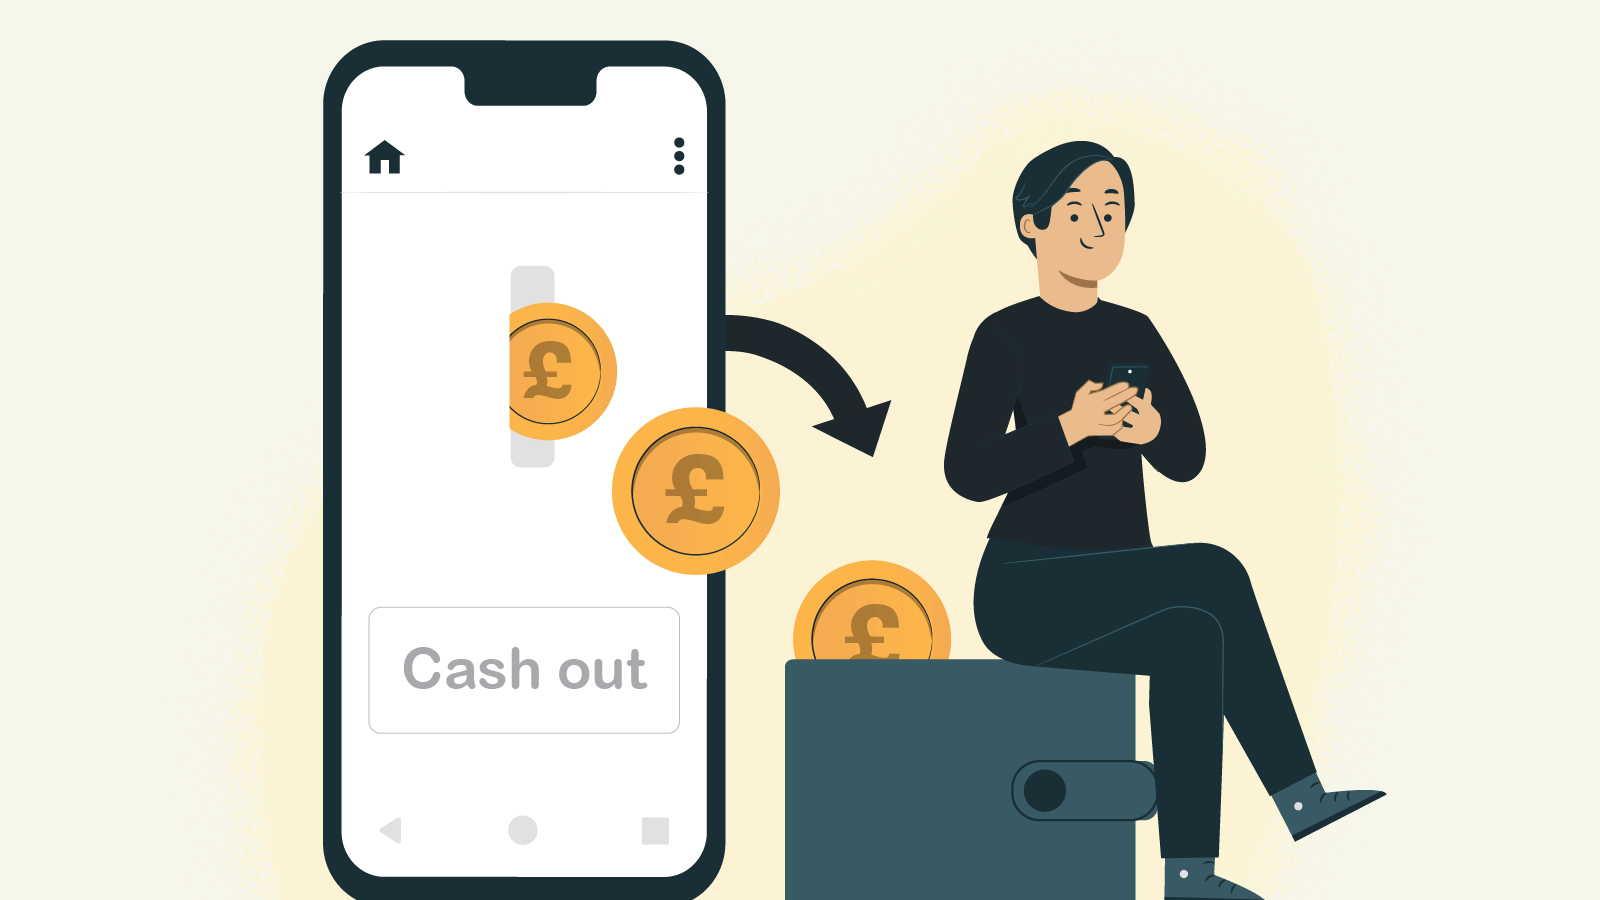 Prepare before you cash out